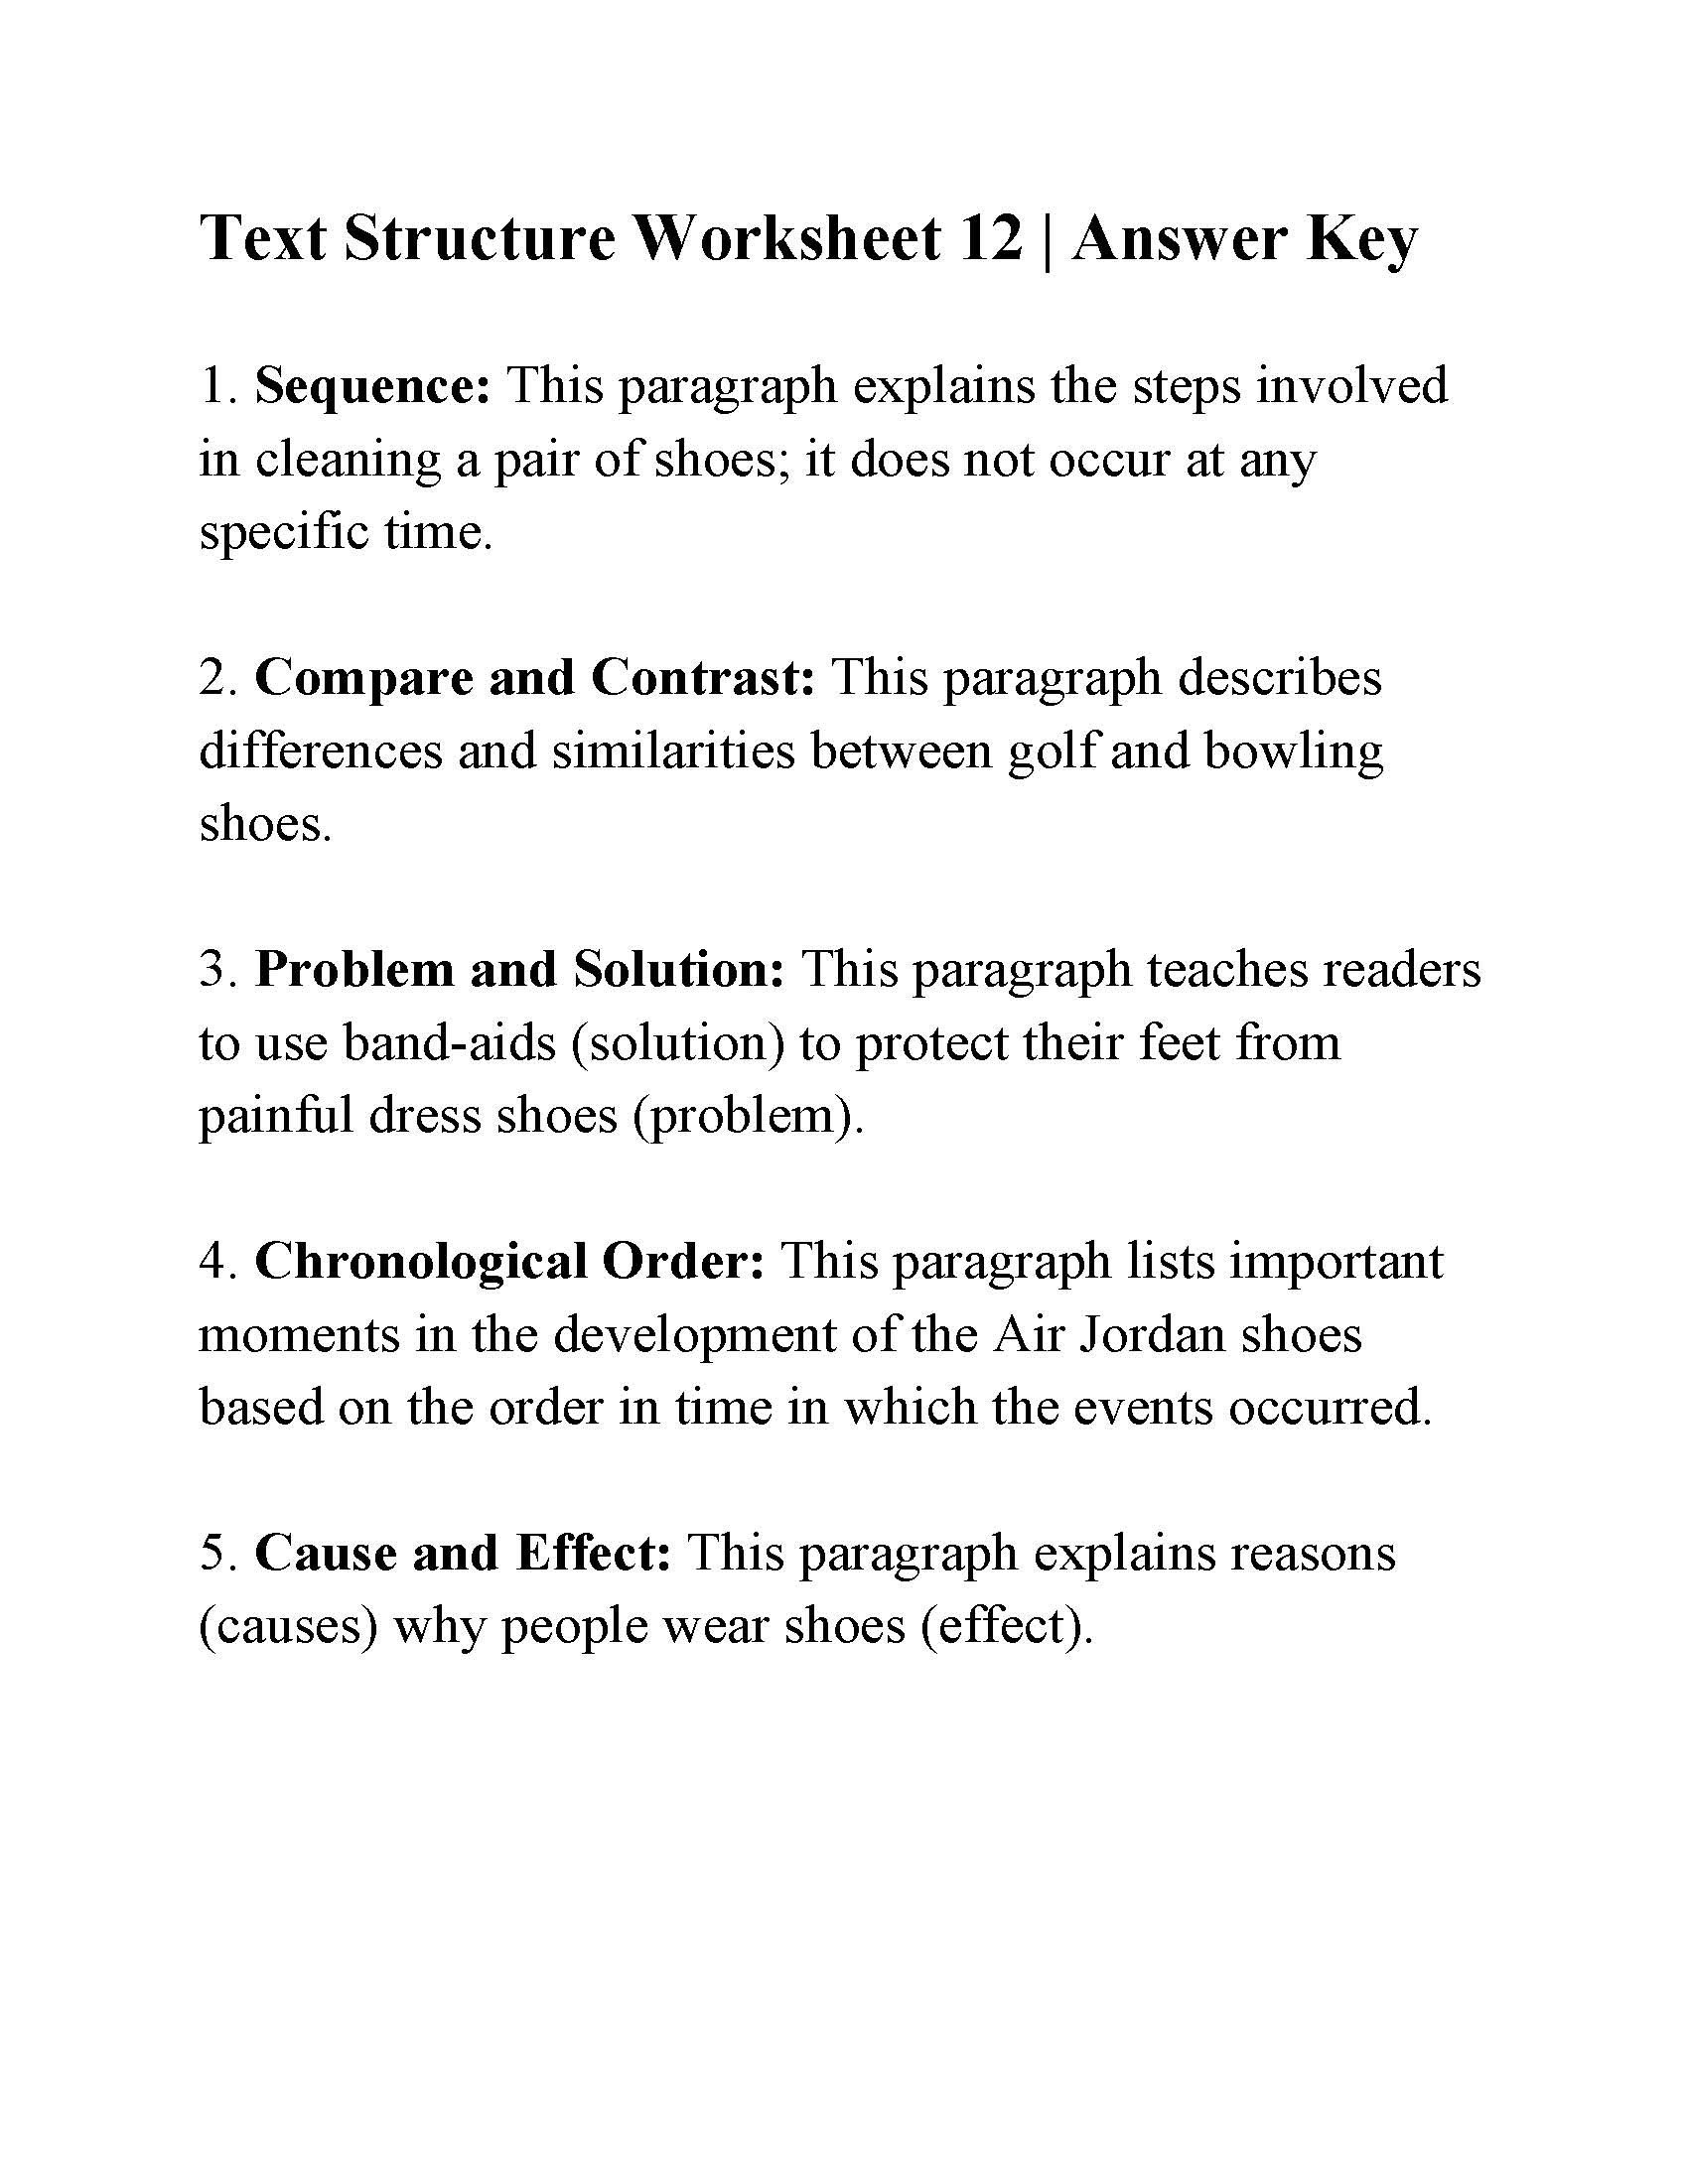 Text Structure Practice Worksheets Text Structure Worksheet 12